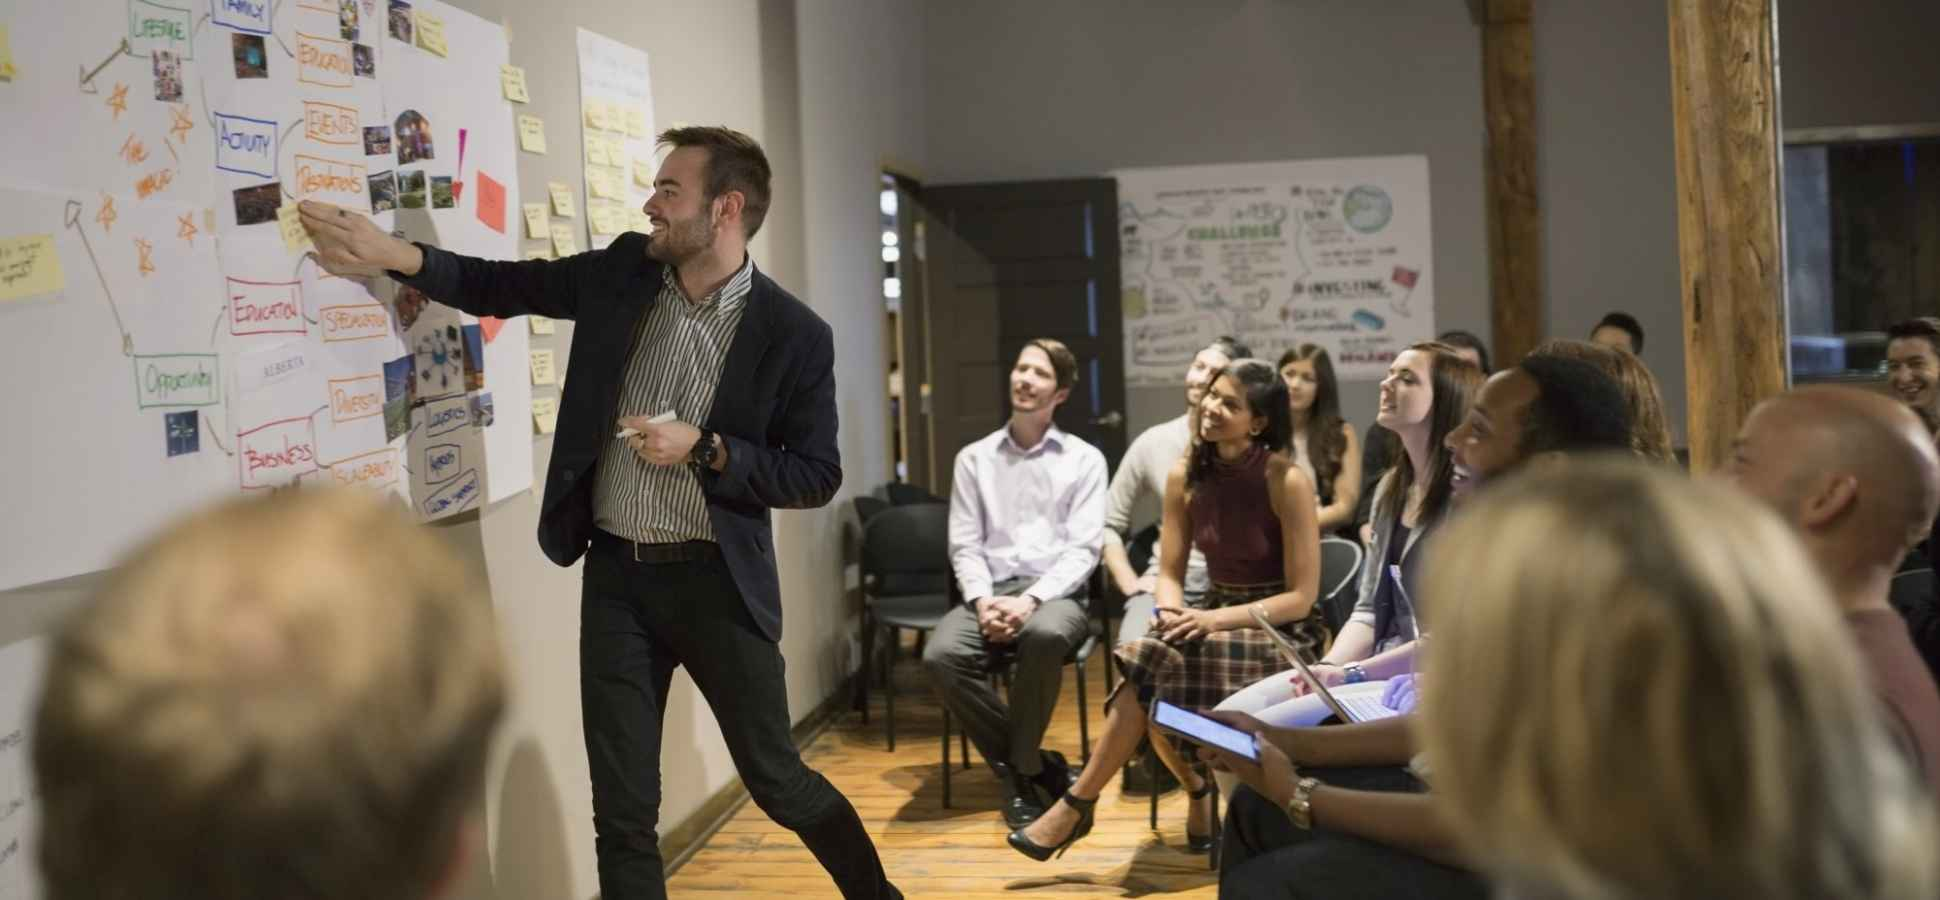 How to Sell Your Ideas More Effectively